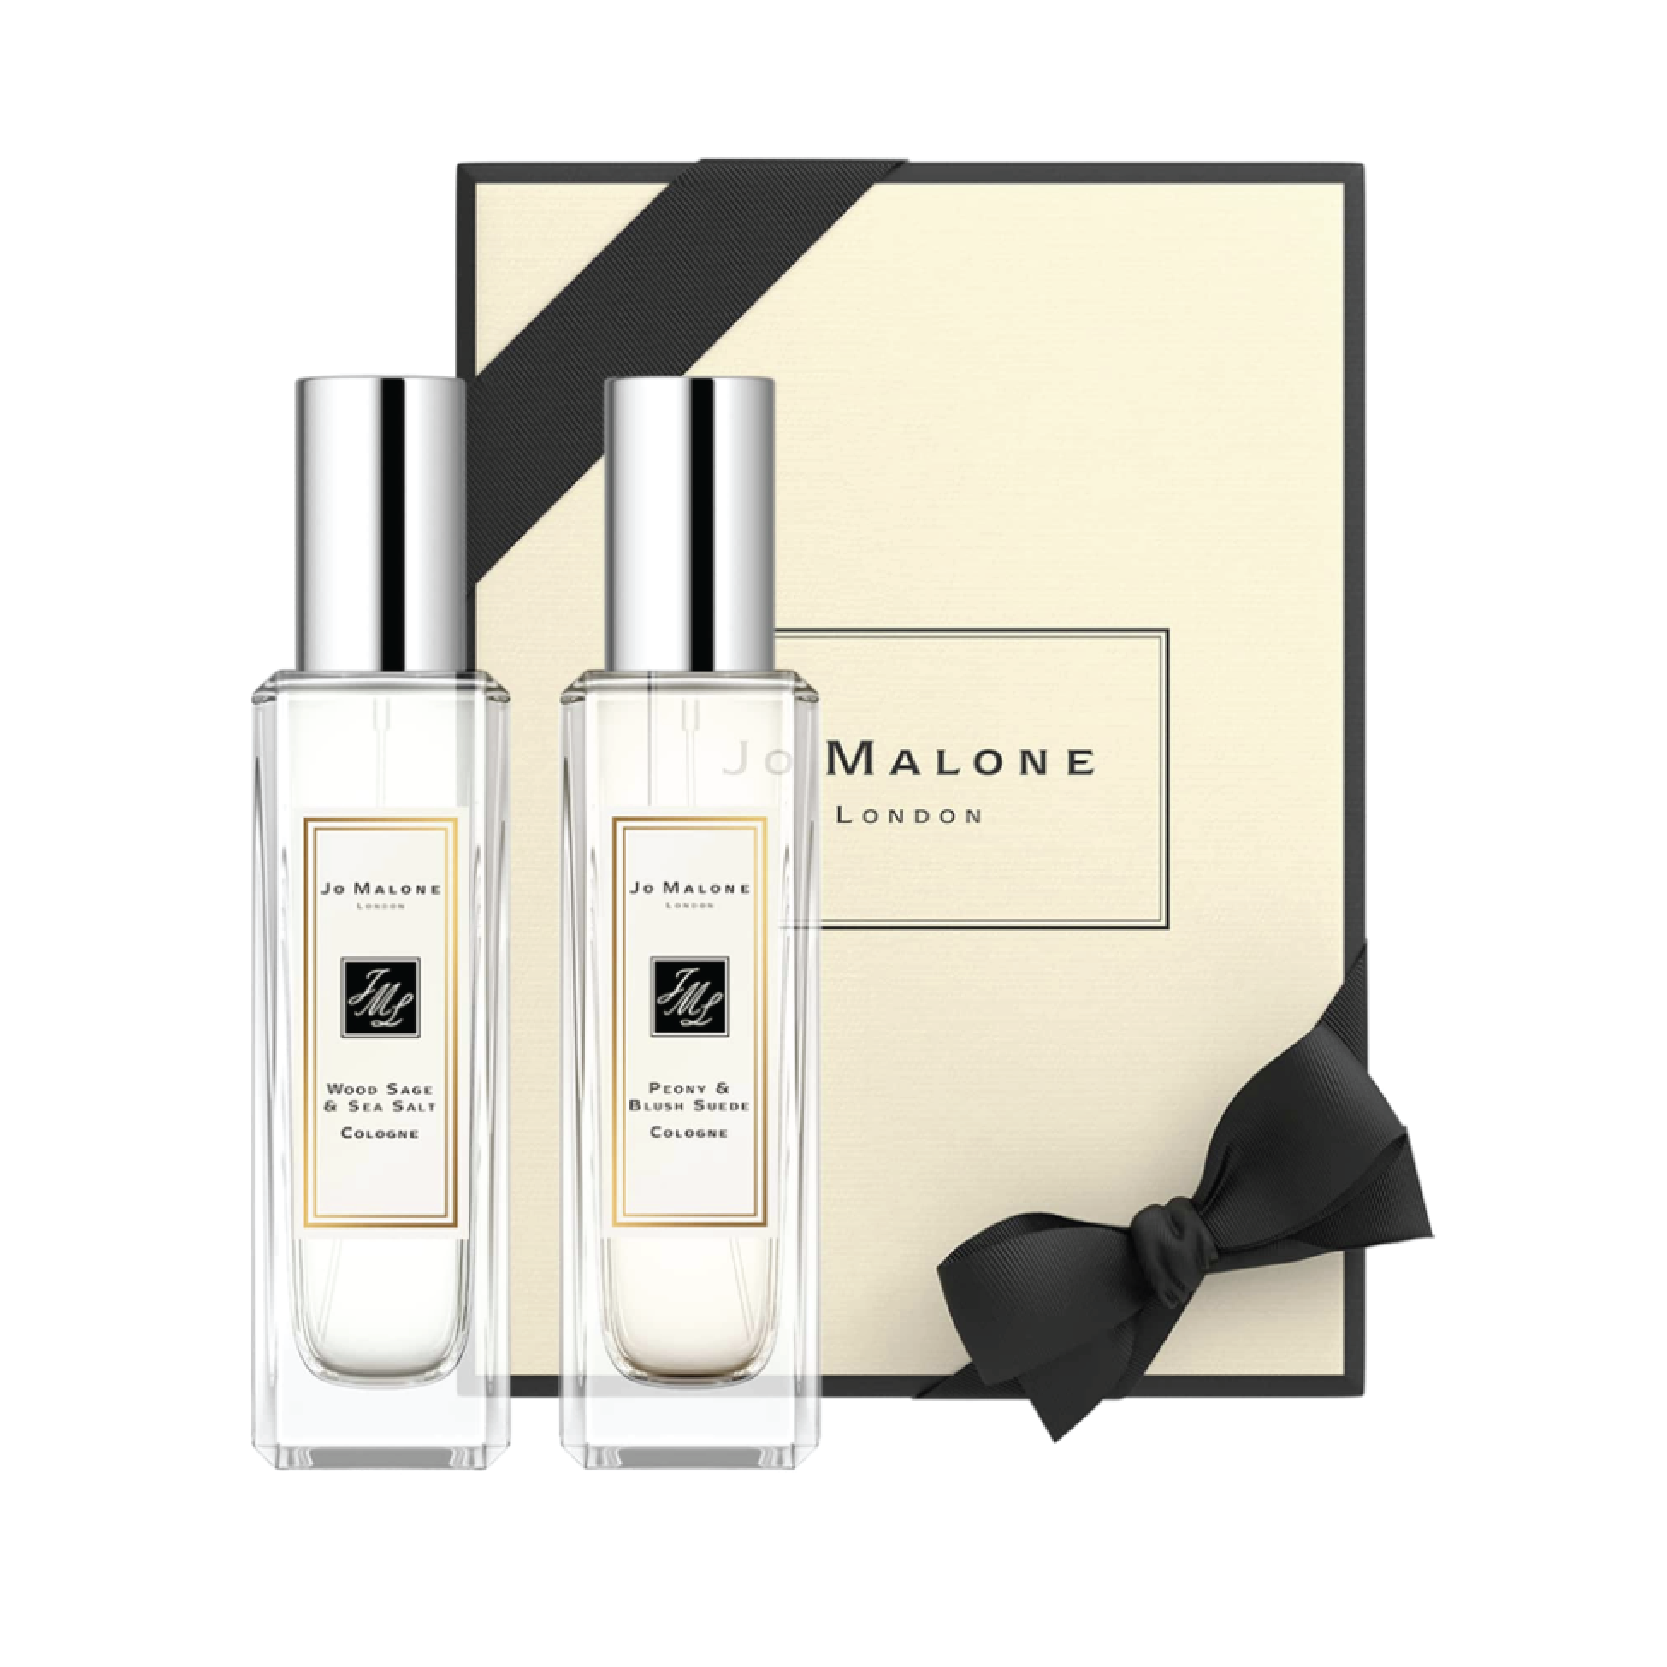 Jo Malone London Fresh & Floral Duo - $136 at NordstromEvery time I wear a Jo Malone fragrance I get complimented on it. Their sophisticated and long-lasting scents make for the classiest of gifts.